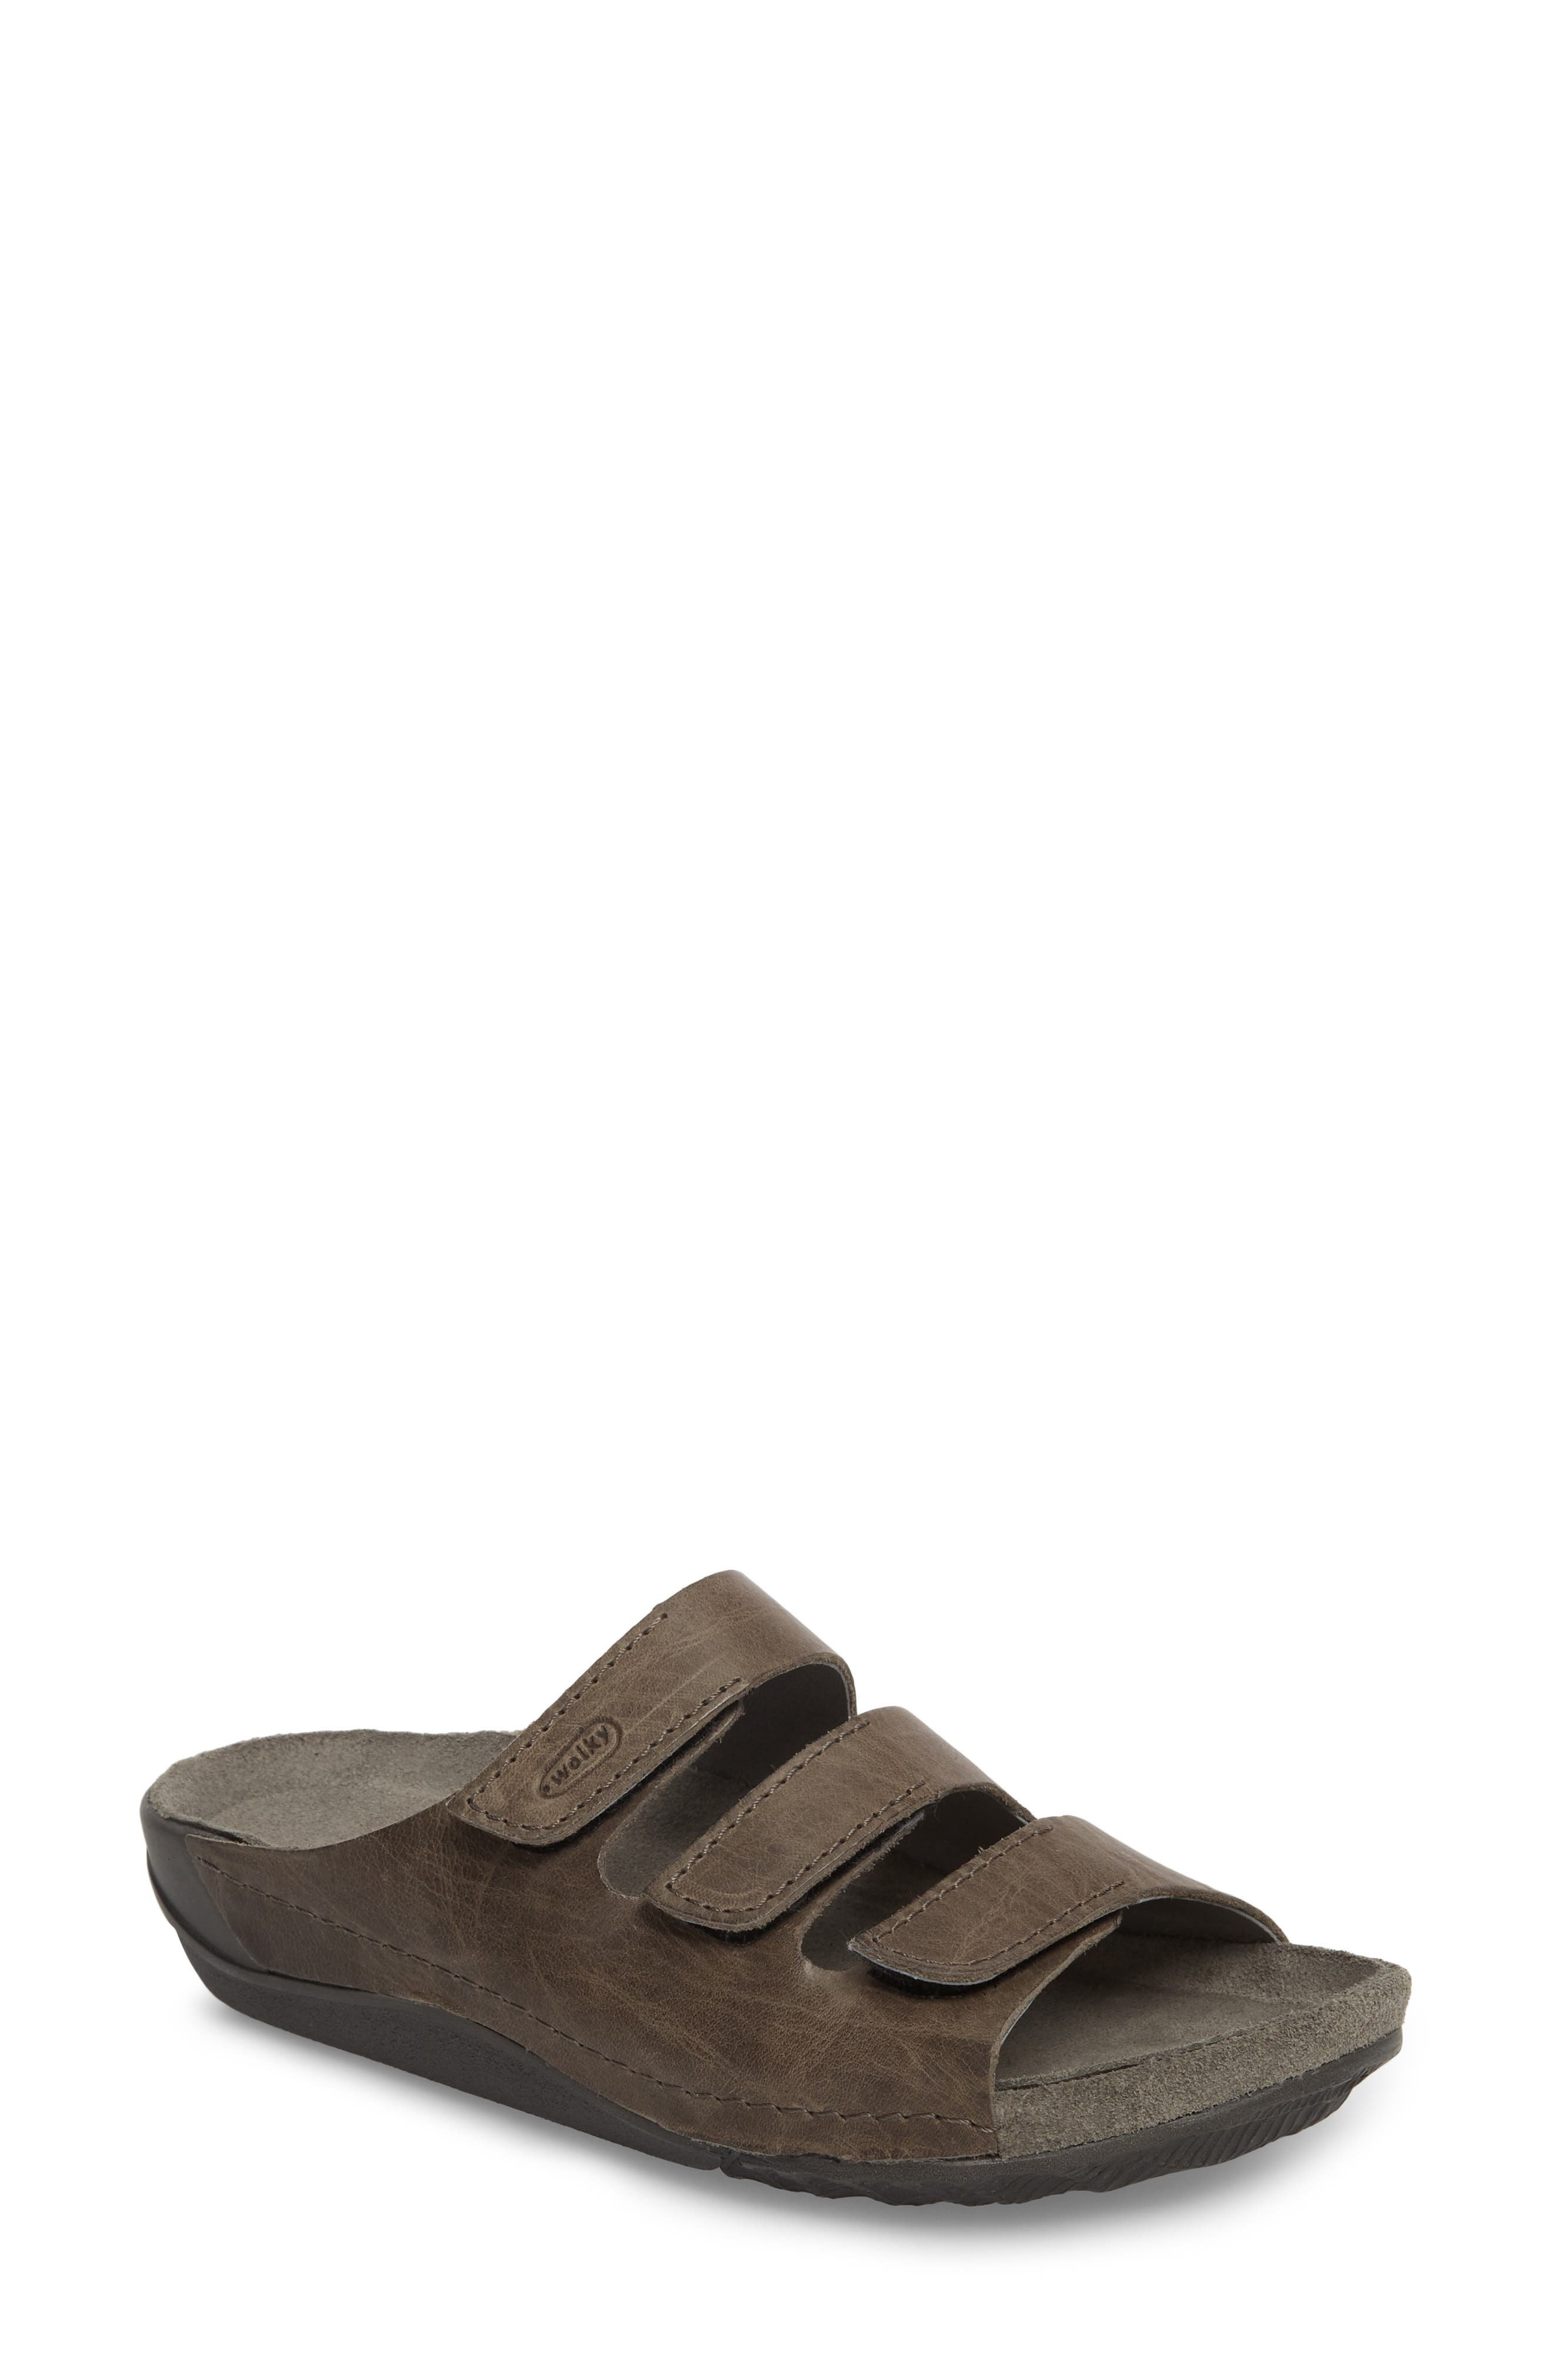 Nomad Slide Sandal,                             Main thumbnail 1, color,                             SLATE LEATHER